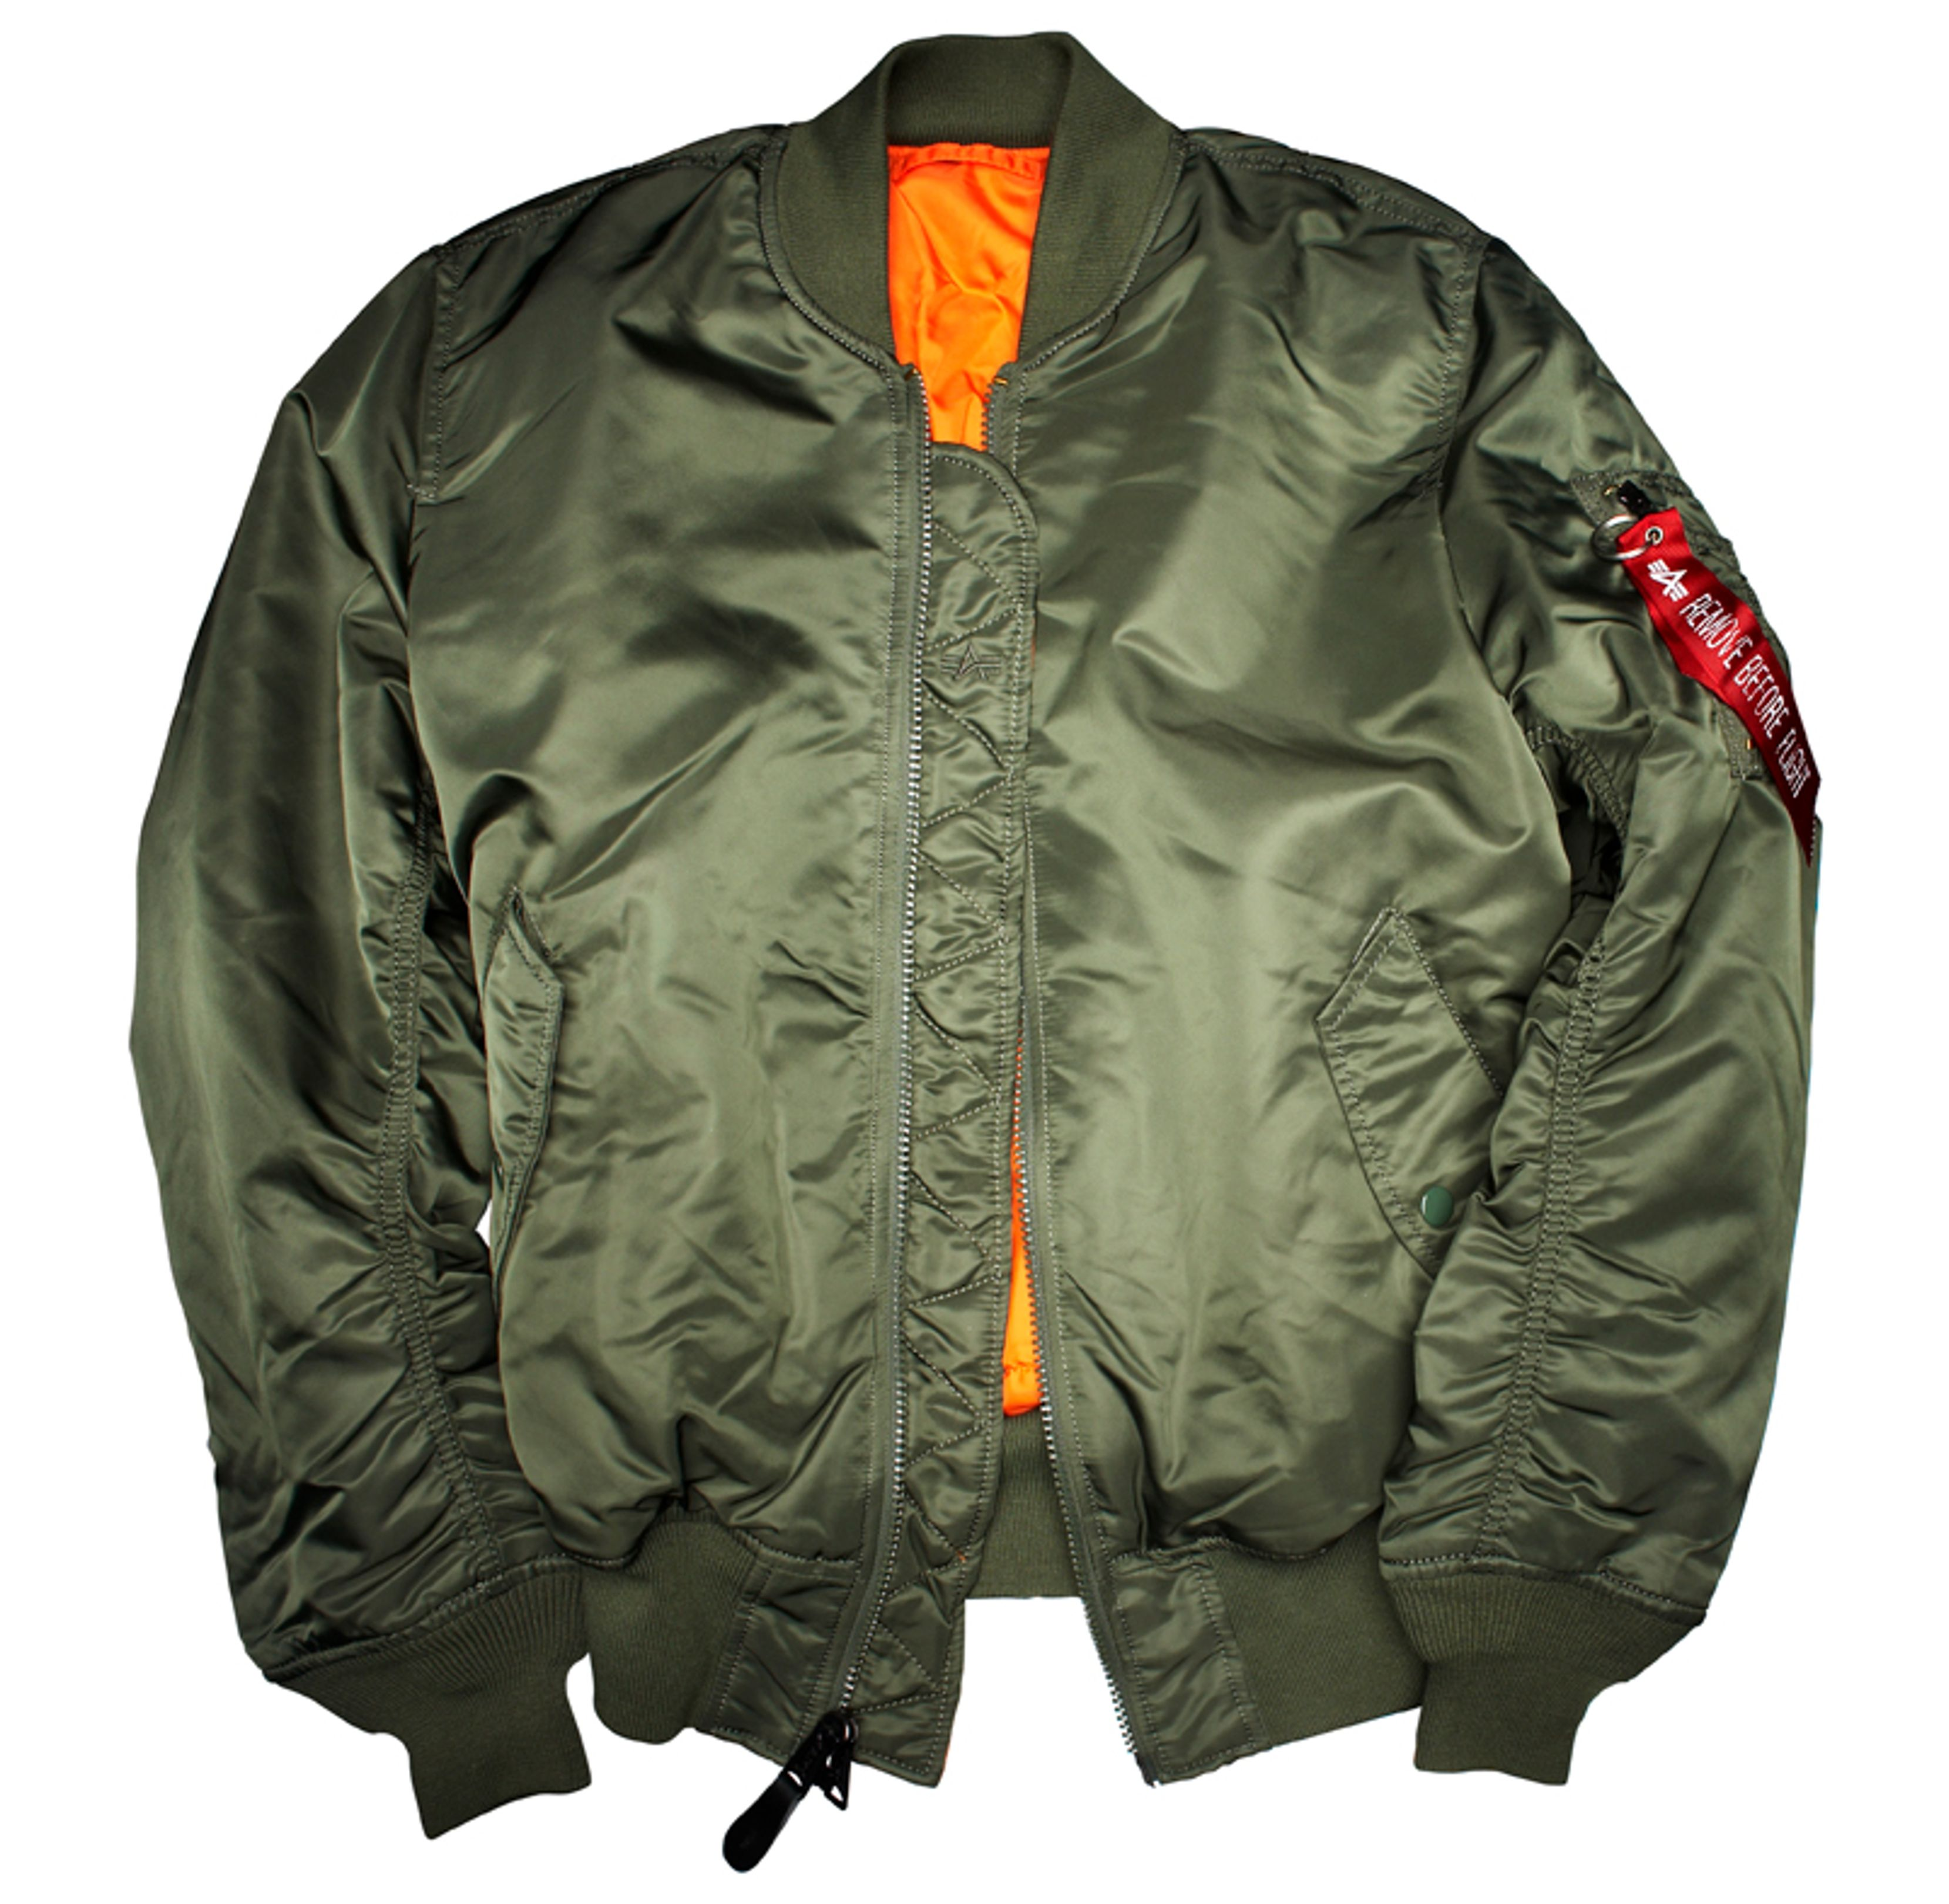 MA1 Jacket The classic U.S. Air Force flight Jacket for